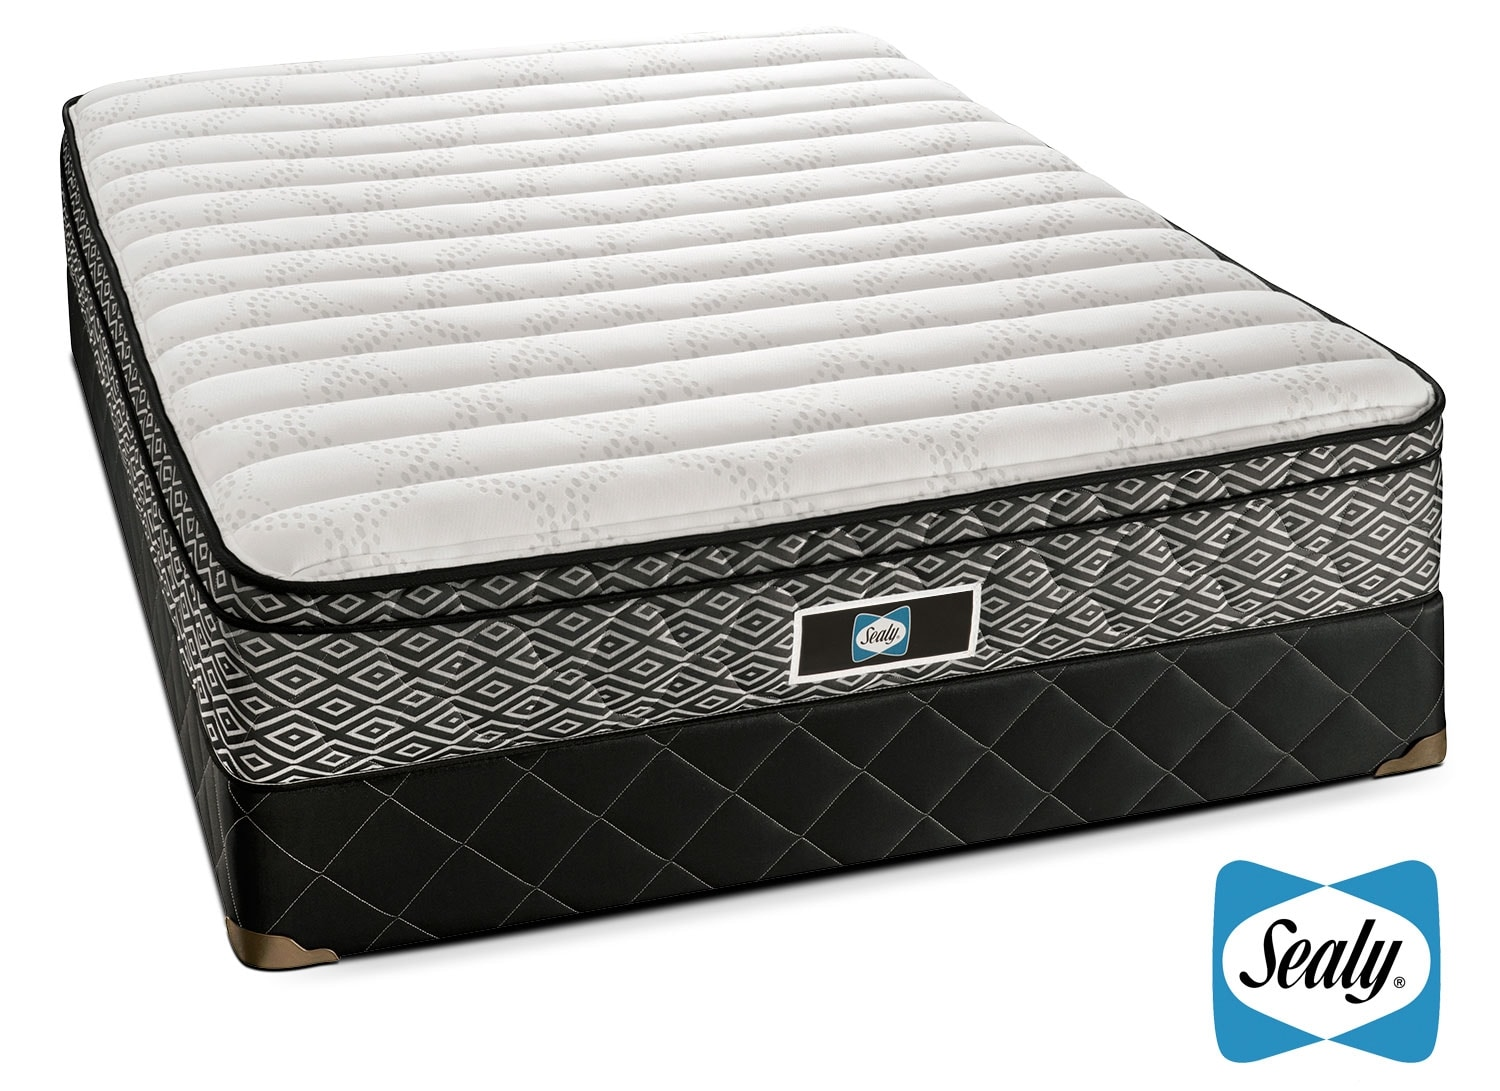 Mattresses and Bedding - Sealy Forum Full Mattress/Boxspring Set